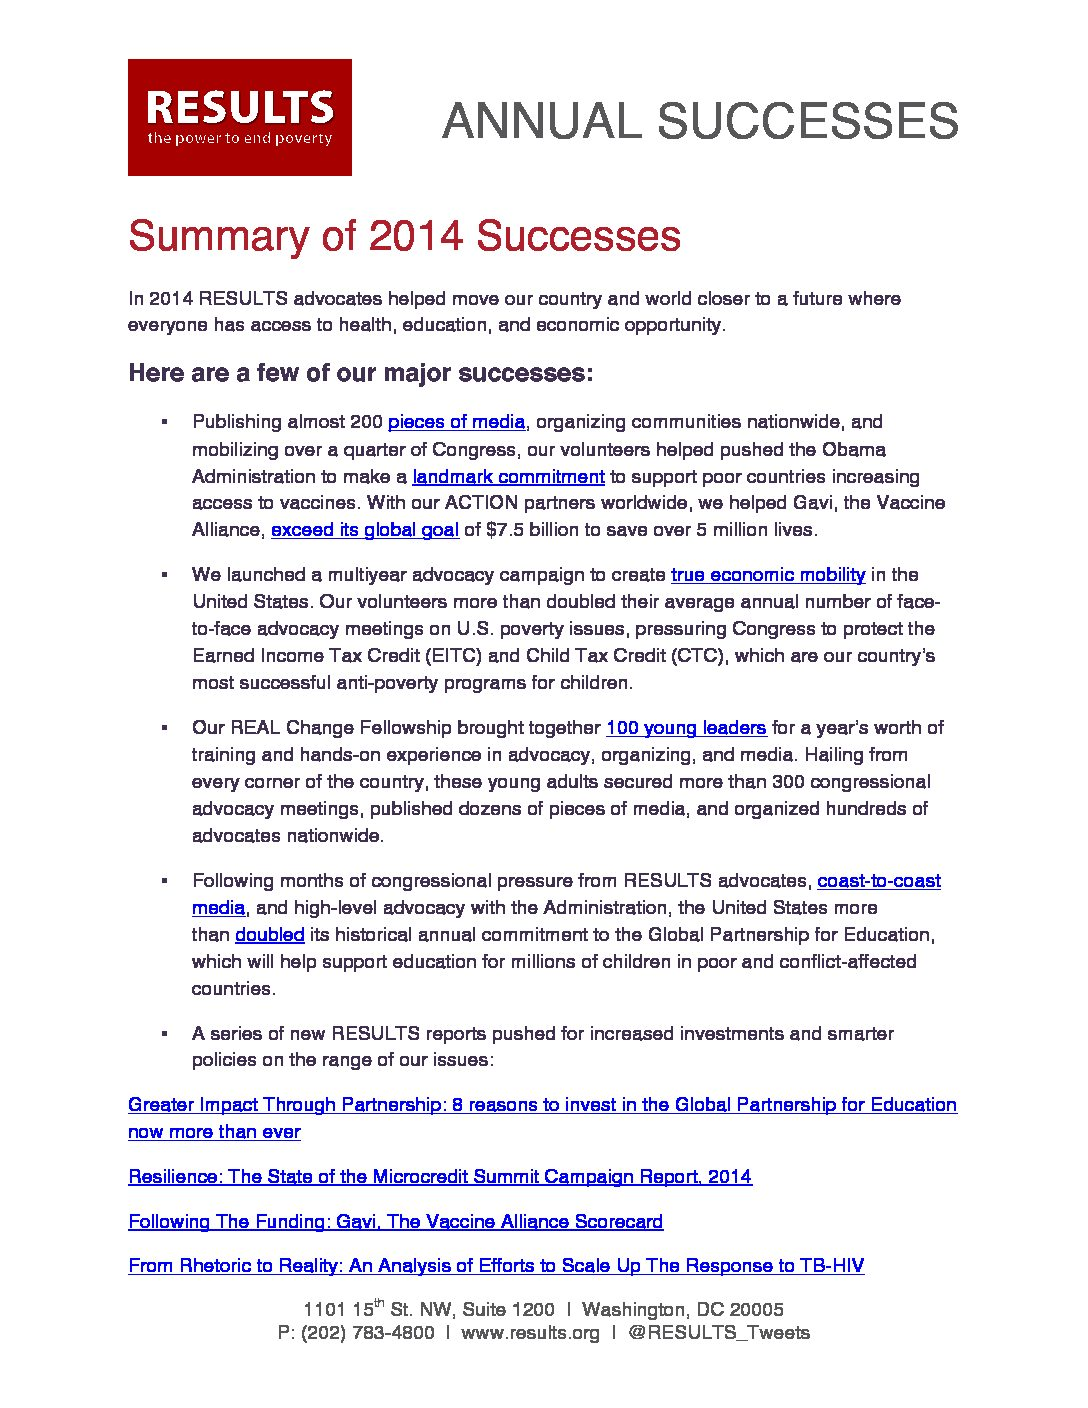 Annual Successes 2014